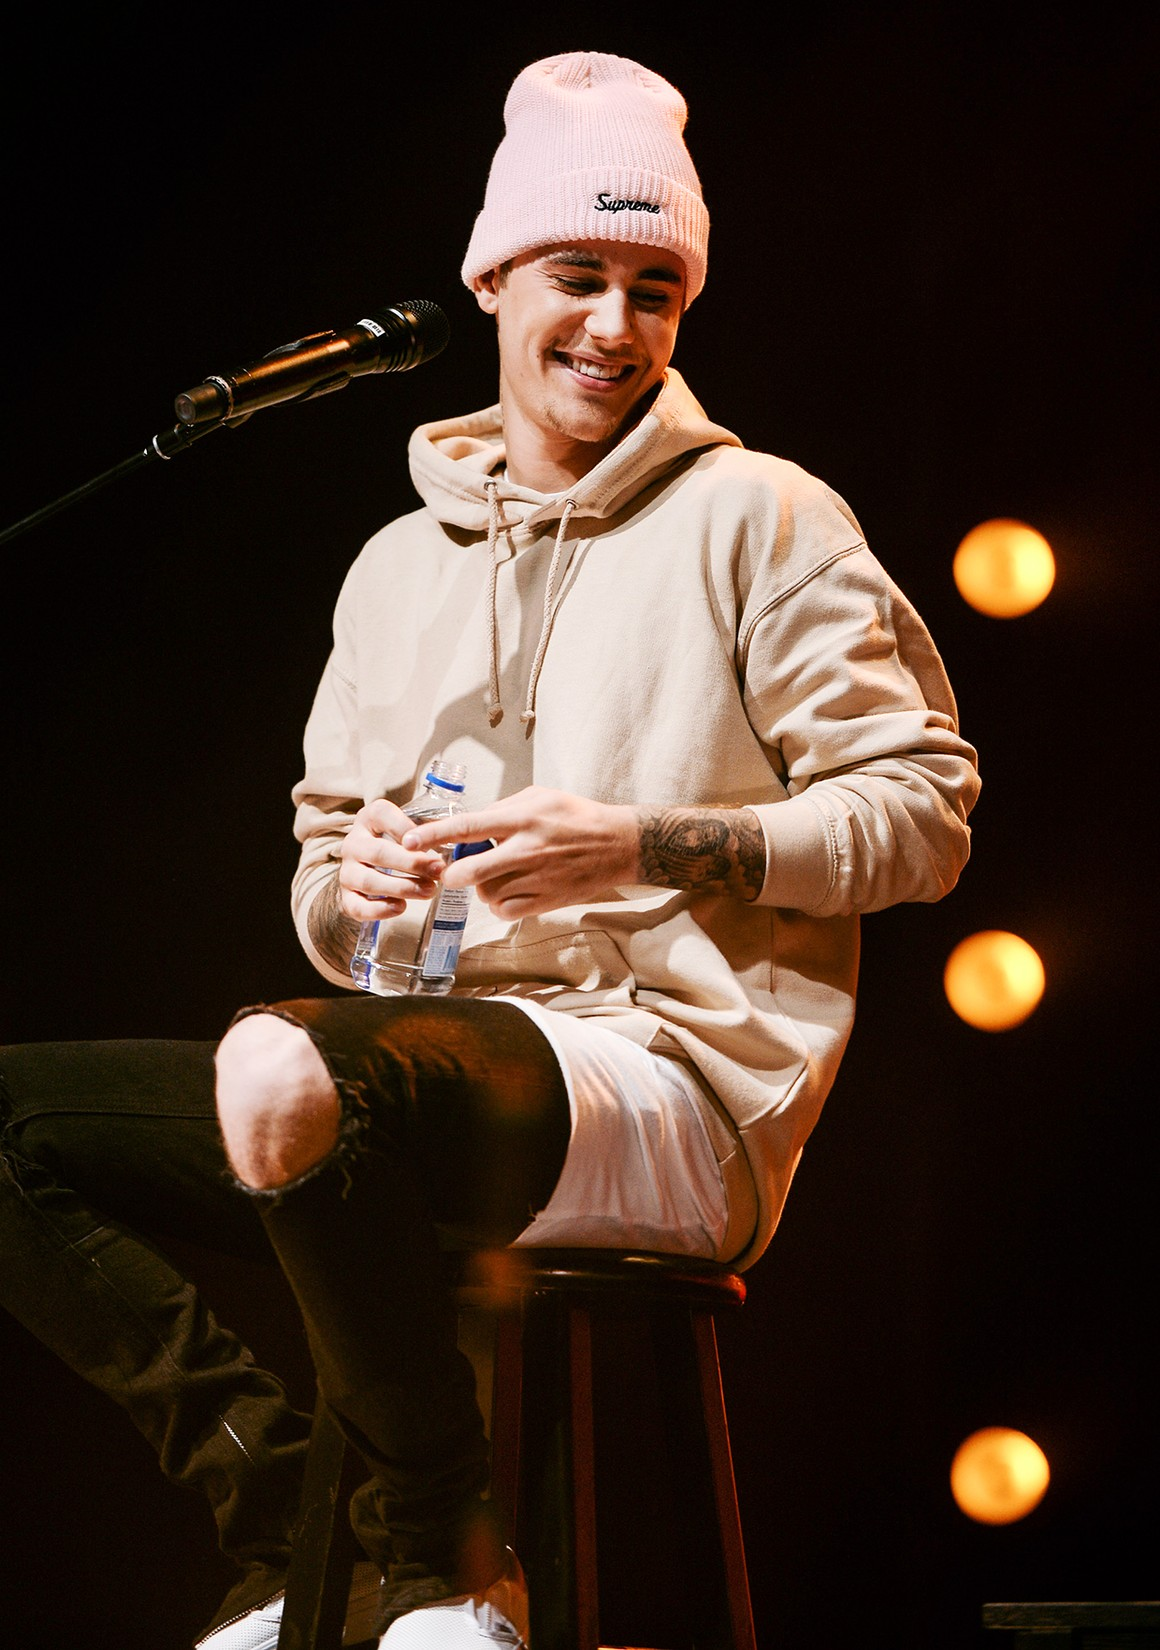 Justin Bieber performs on stage during 'An Acoustic Evening With Justin Bieber' at The Danforth Music Hall on Dec. 7, 2015 in Toronto, Canada.